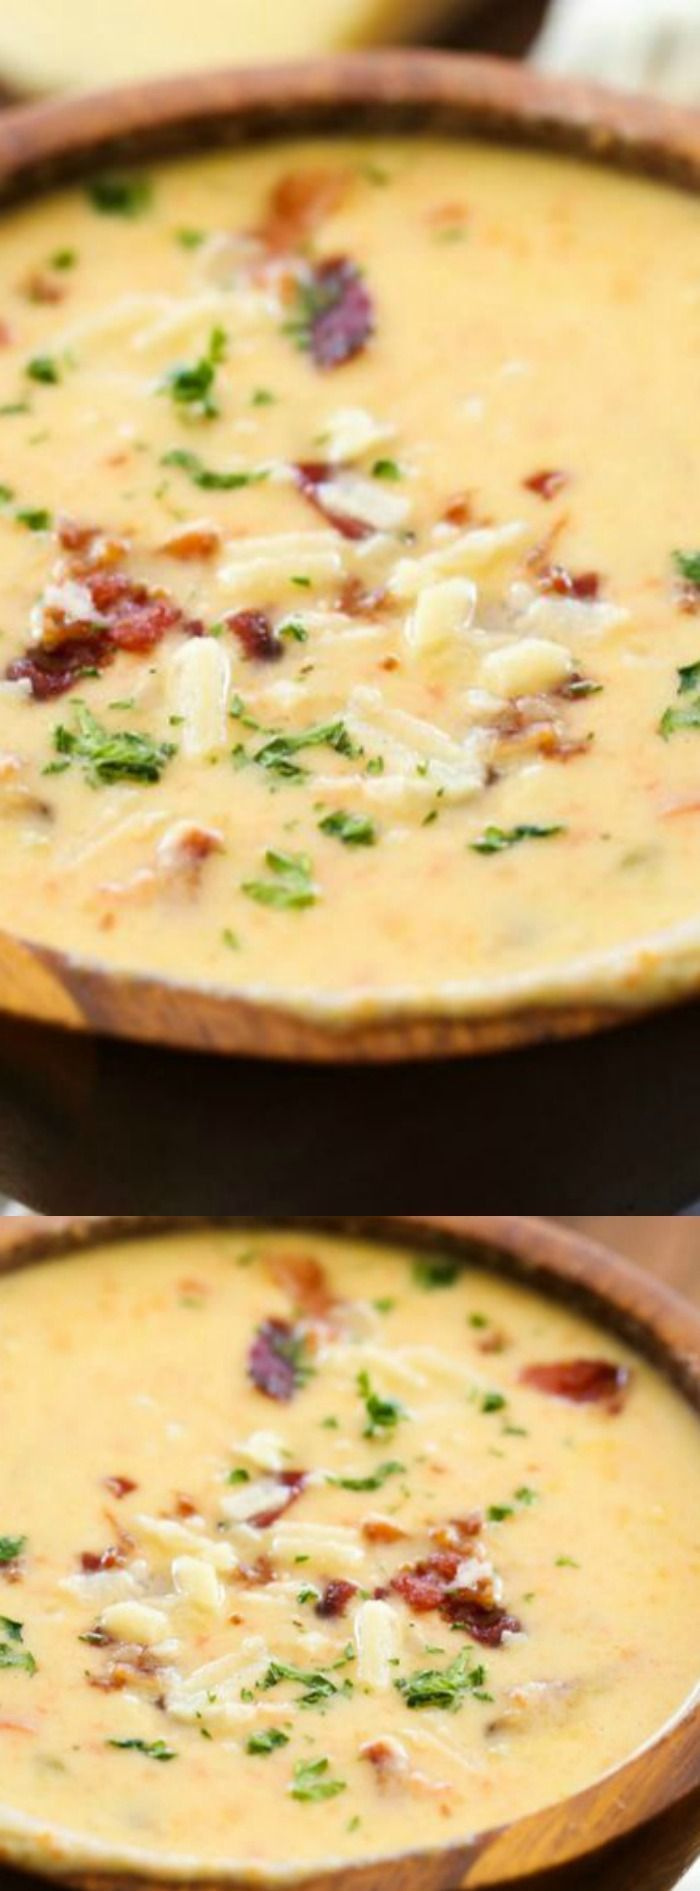 This Asiago Bisque soup recipe from Chef in Training is so incredibly delicious! It is a flavorful recipe that combines delicious Asiago cheese with bacon, onion, celery, potatoes and other ingredients to create a creamy soup that your family will love.